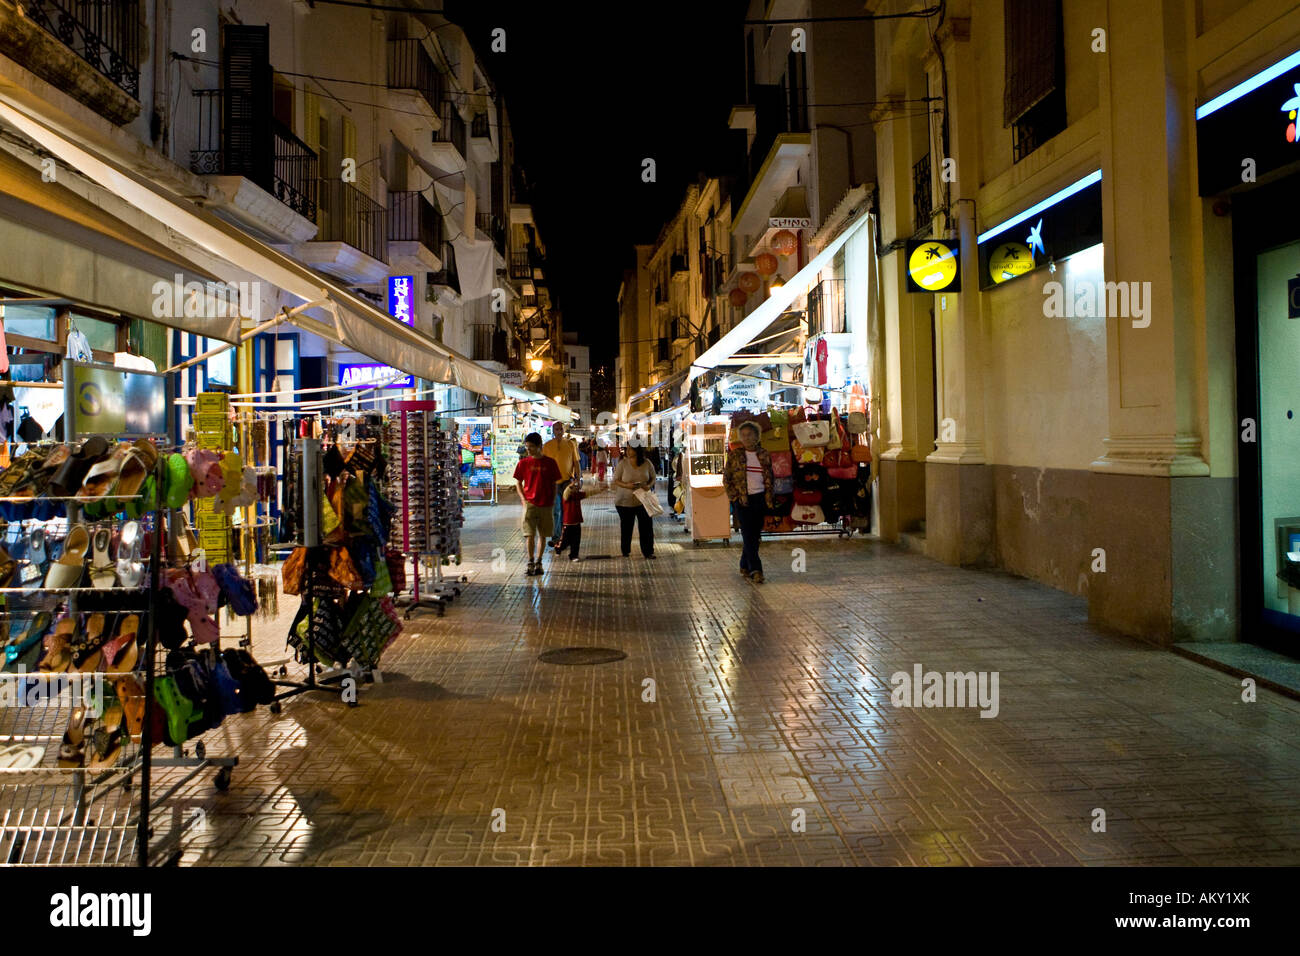 night life in the streets of the old town of eivissa ibiza stock photo 15094218 alamy. Black Bedroom Furniture Sets. Home Design Ideas